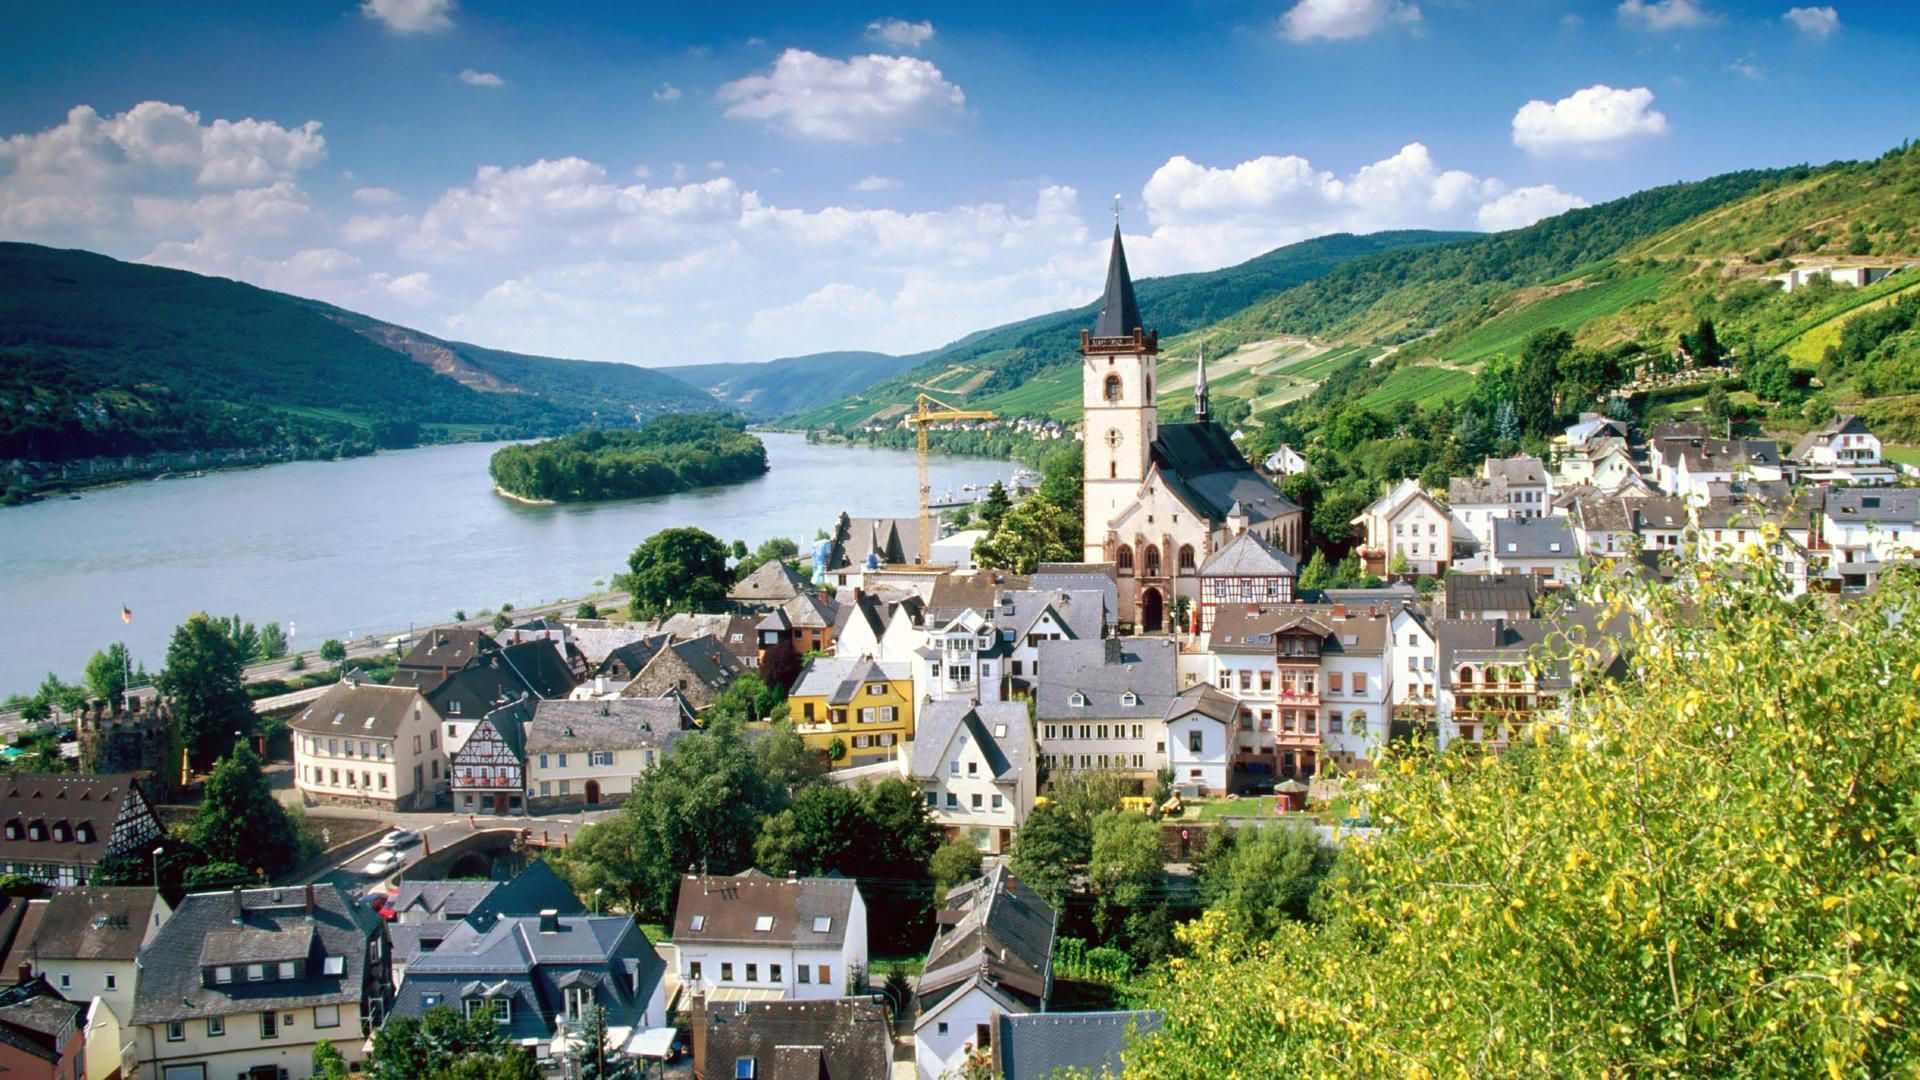 hd wallpaper lorch village on the rhine river germany Wallpapers 1920x1080